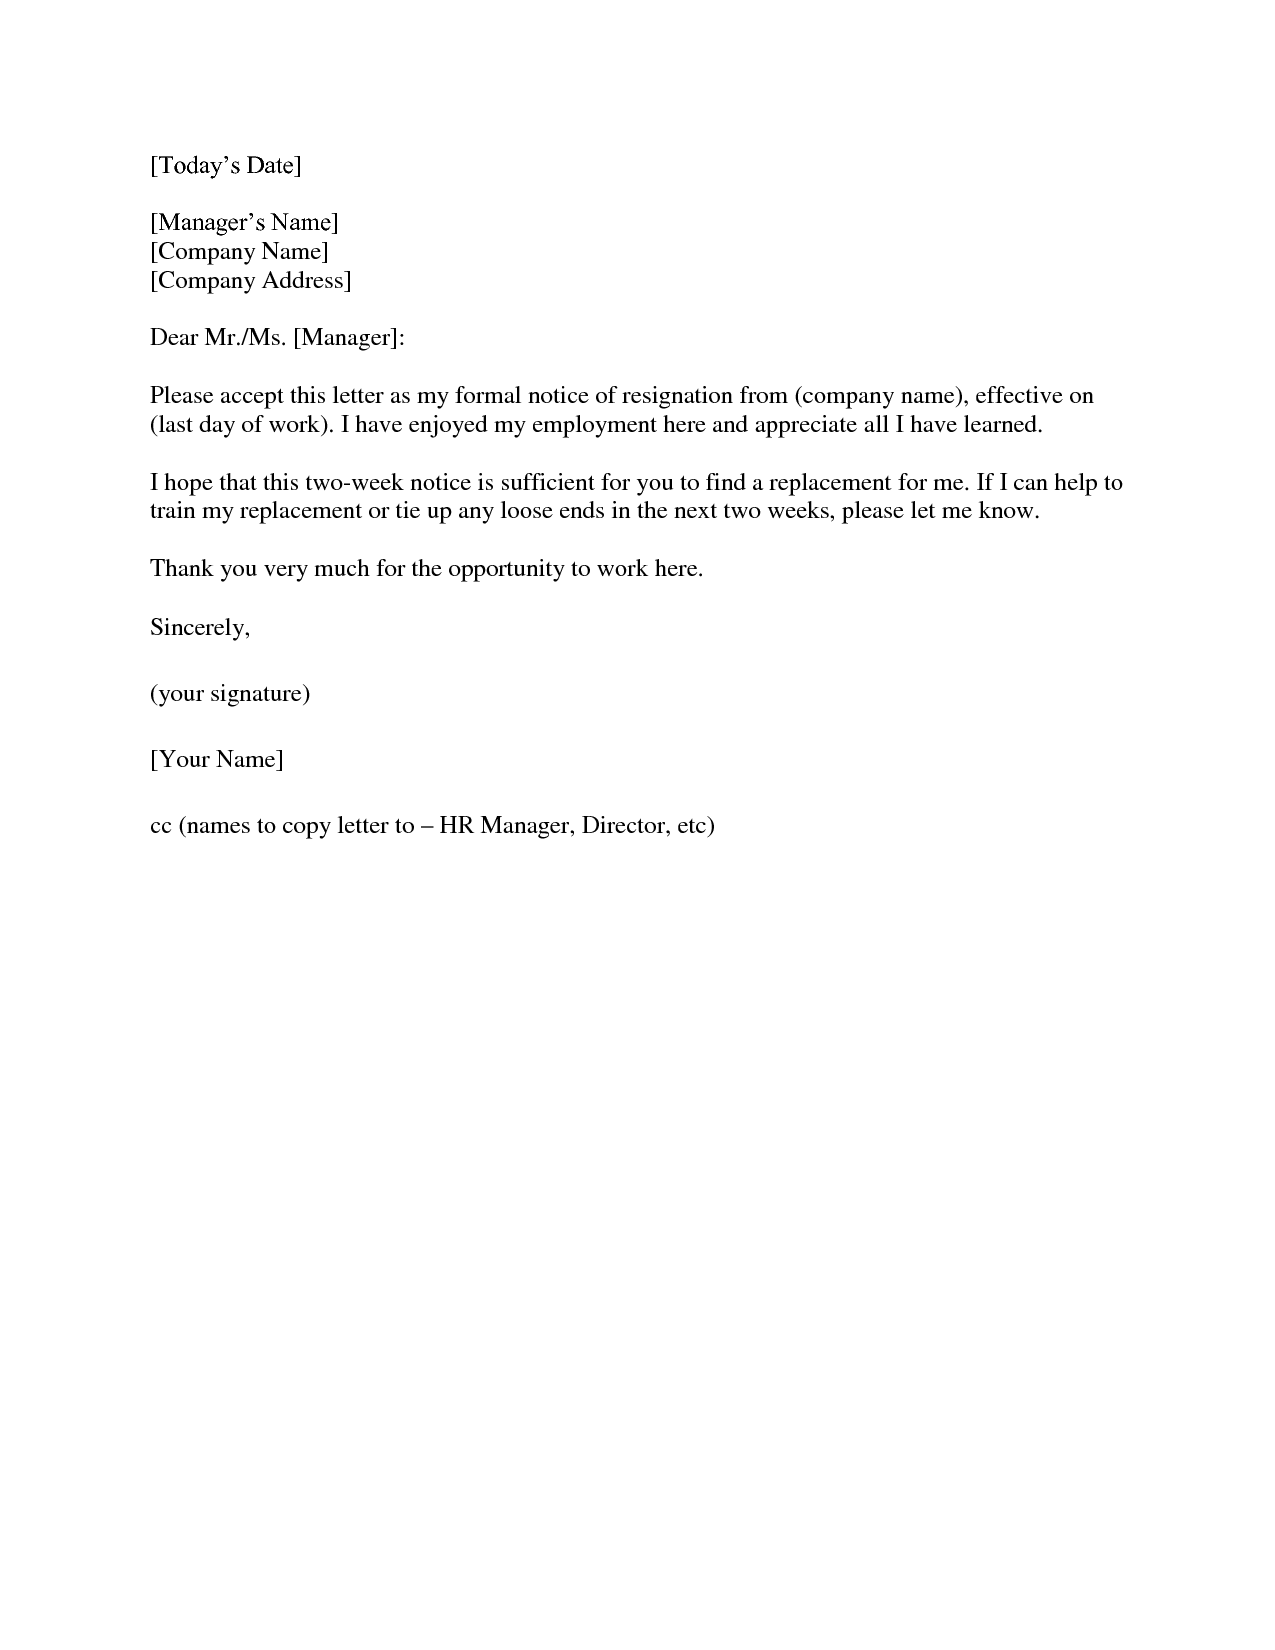 Resignation Format 2 Weeks Notice Letter  Resignation Letter 2 Week Notice  Words